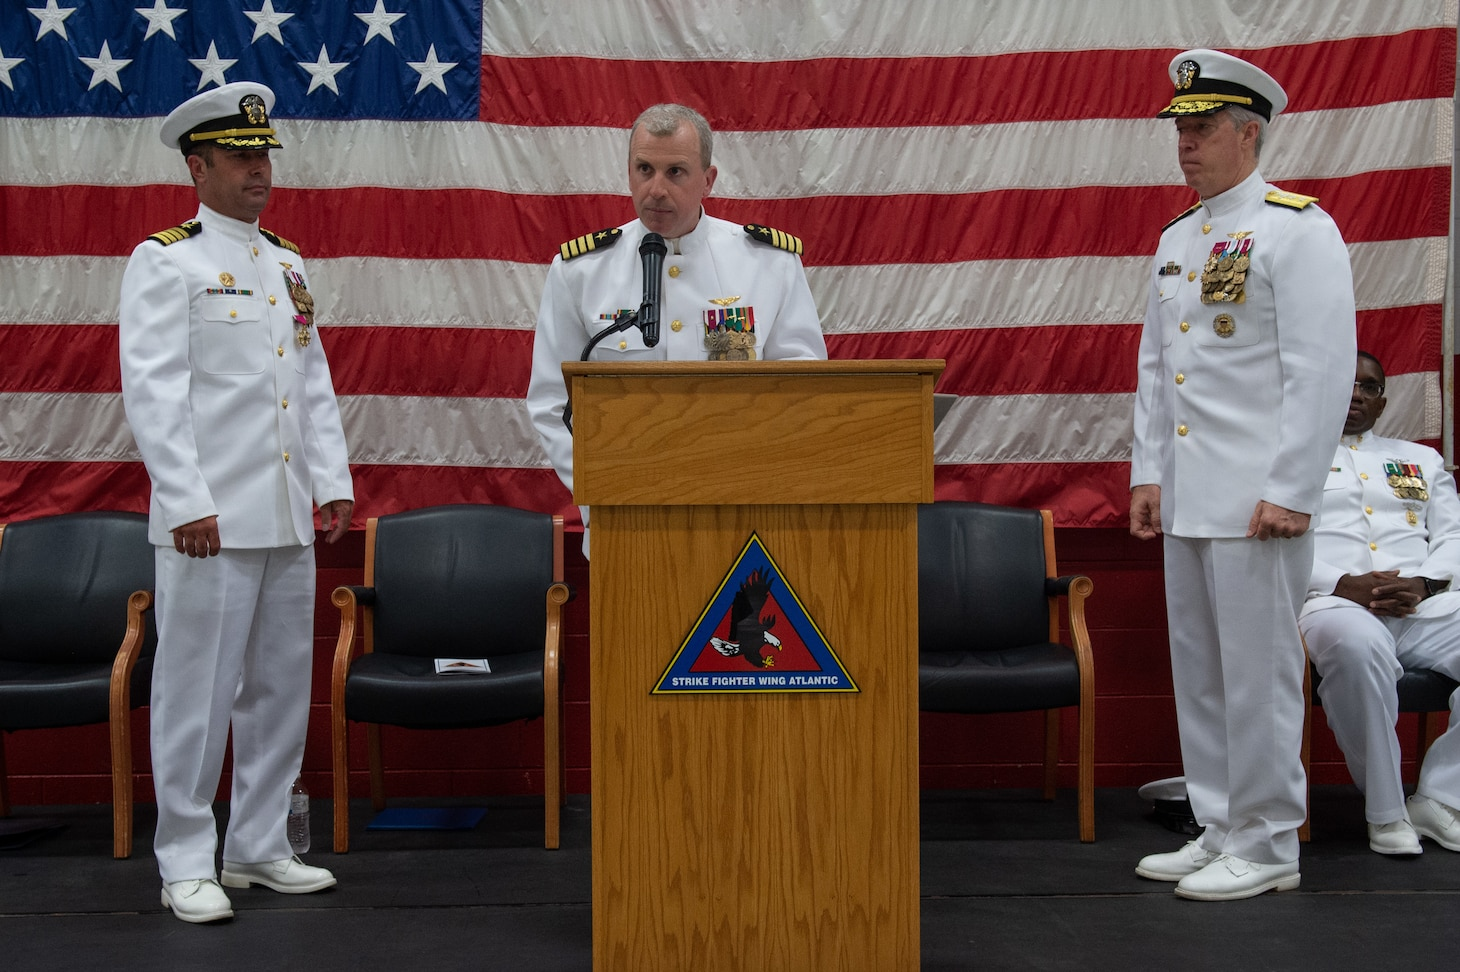 Capt. Ted C. Ricciardella, Commander, Strike Fighter Wing Atlantic (CSFWL), speaks during his change of command ceremony onboard Naval Air Station Oceana. Ricciardella assumes command as commodore of CSFWL from Capt. Brian C. Becker.